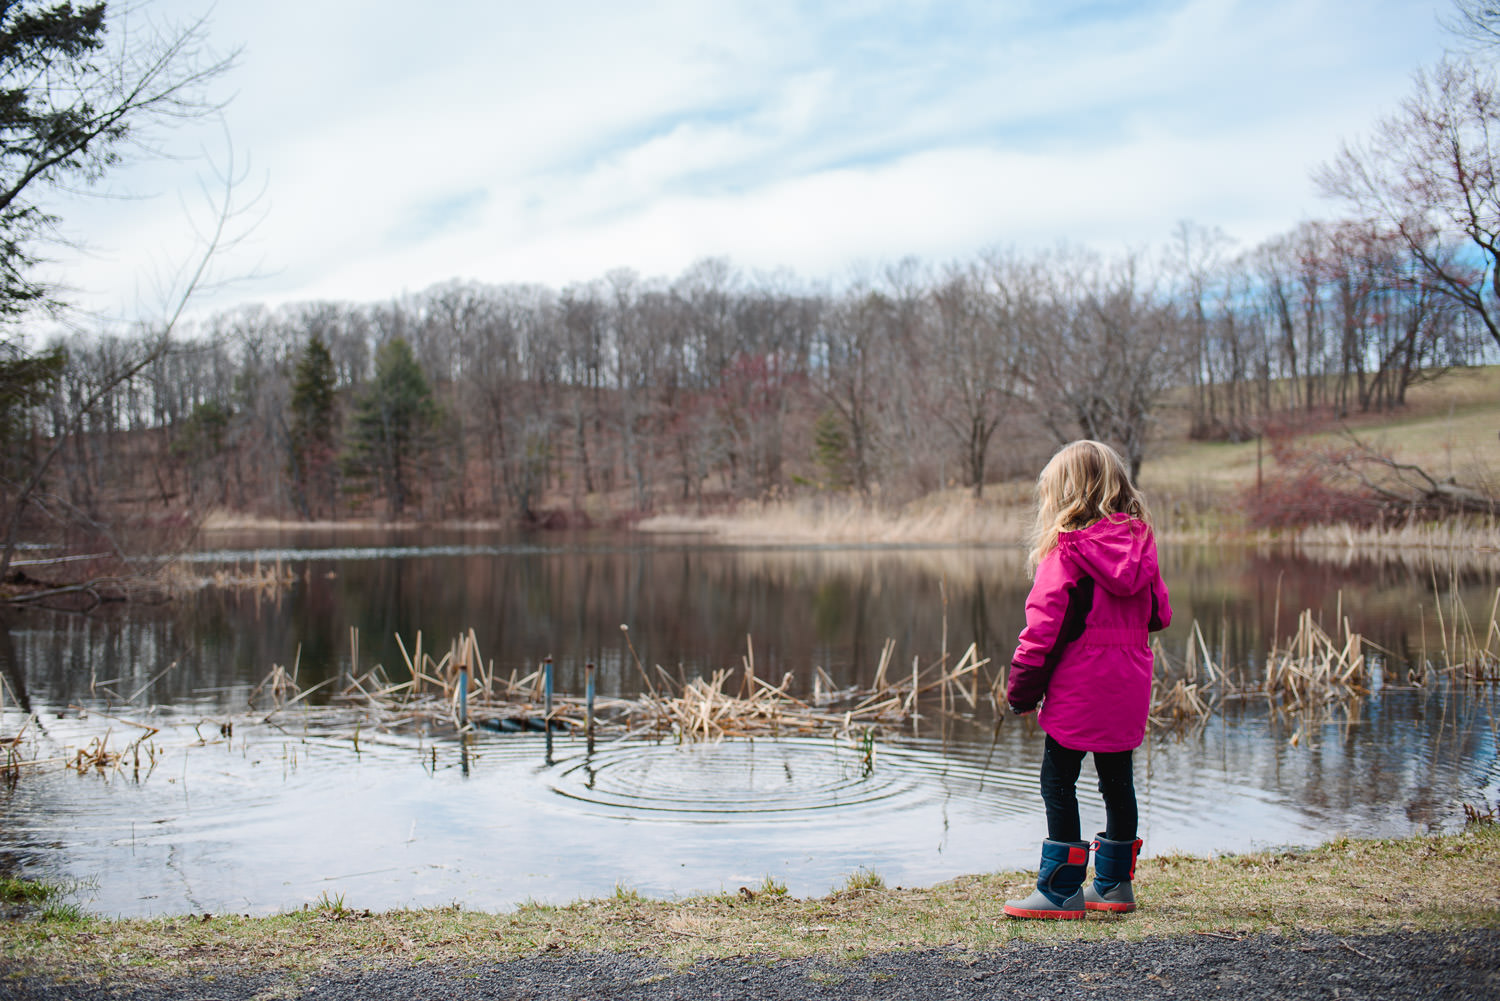 A little girl looks out at a pond.